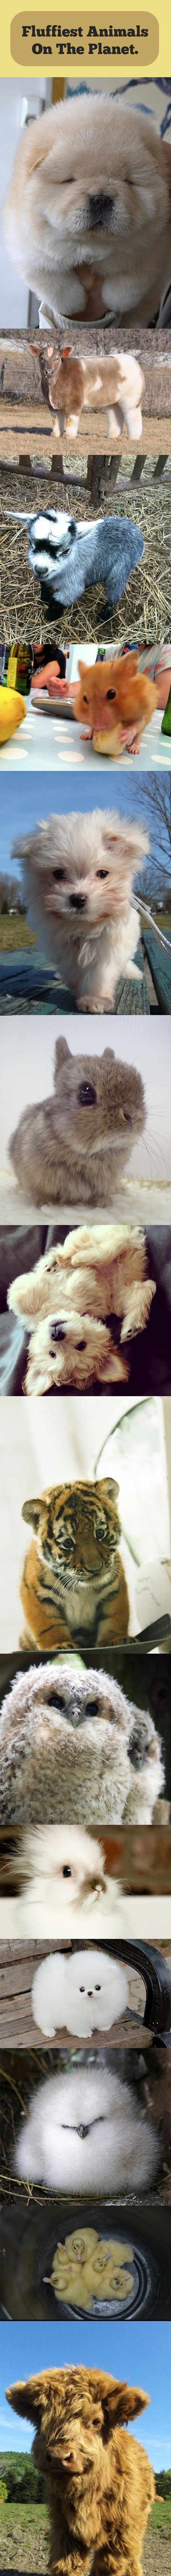 funny-fluffy-pets-hairy-compilation